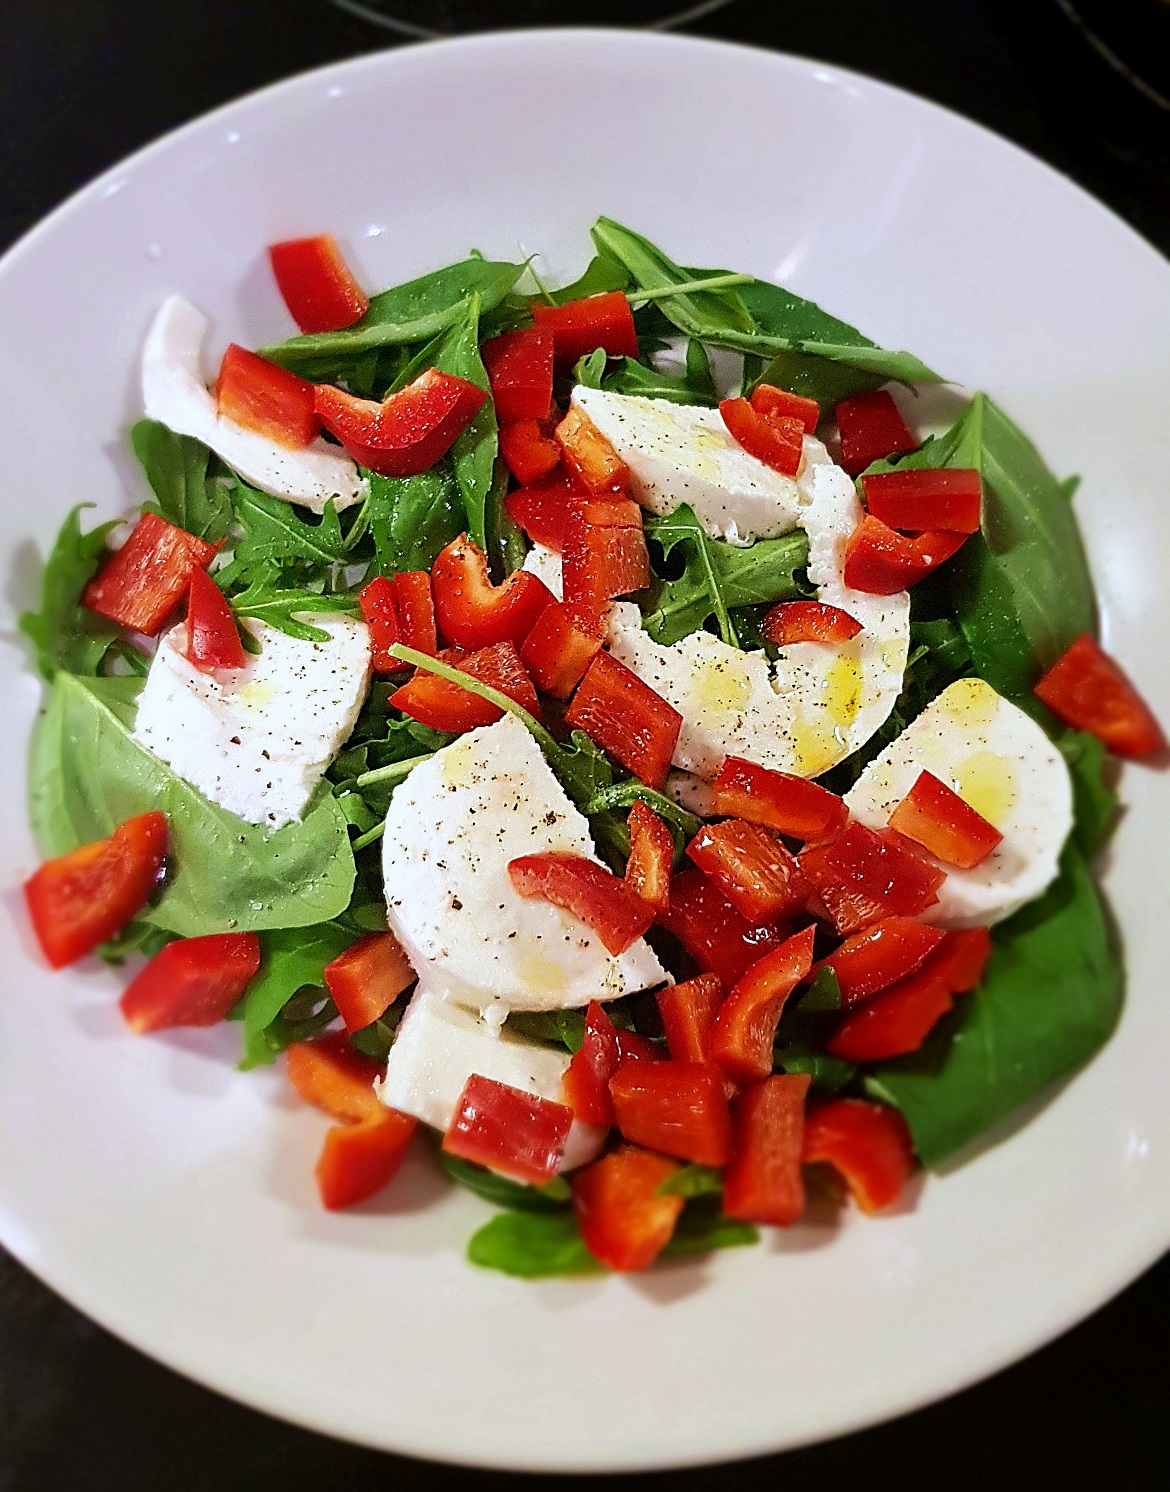 Caprese salad, without tomatoes, with peppers - November Monthly Recap by BeckyBecky Blogs